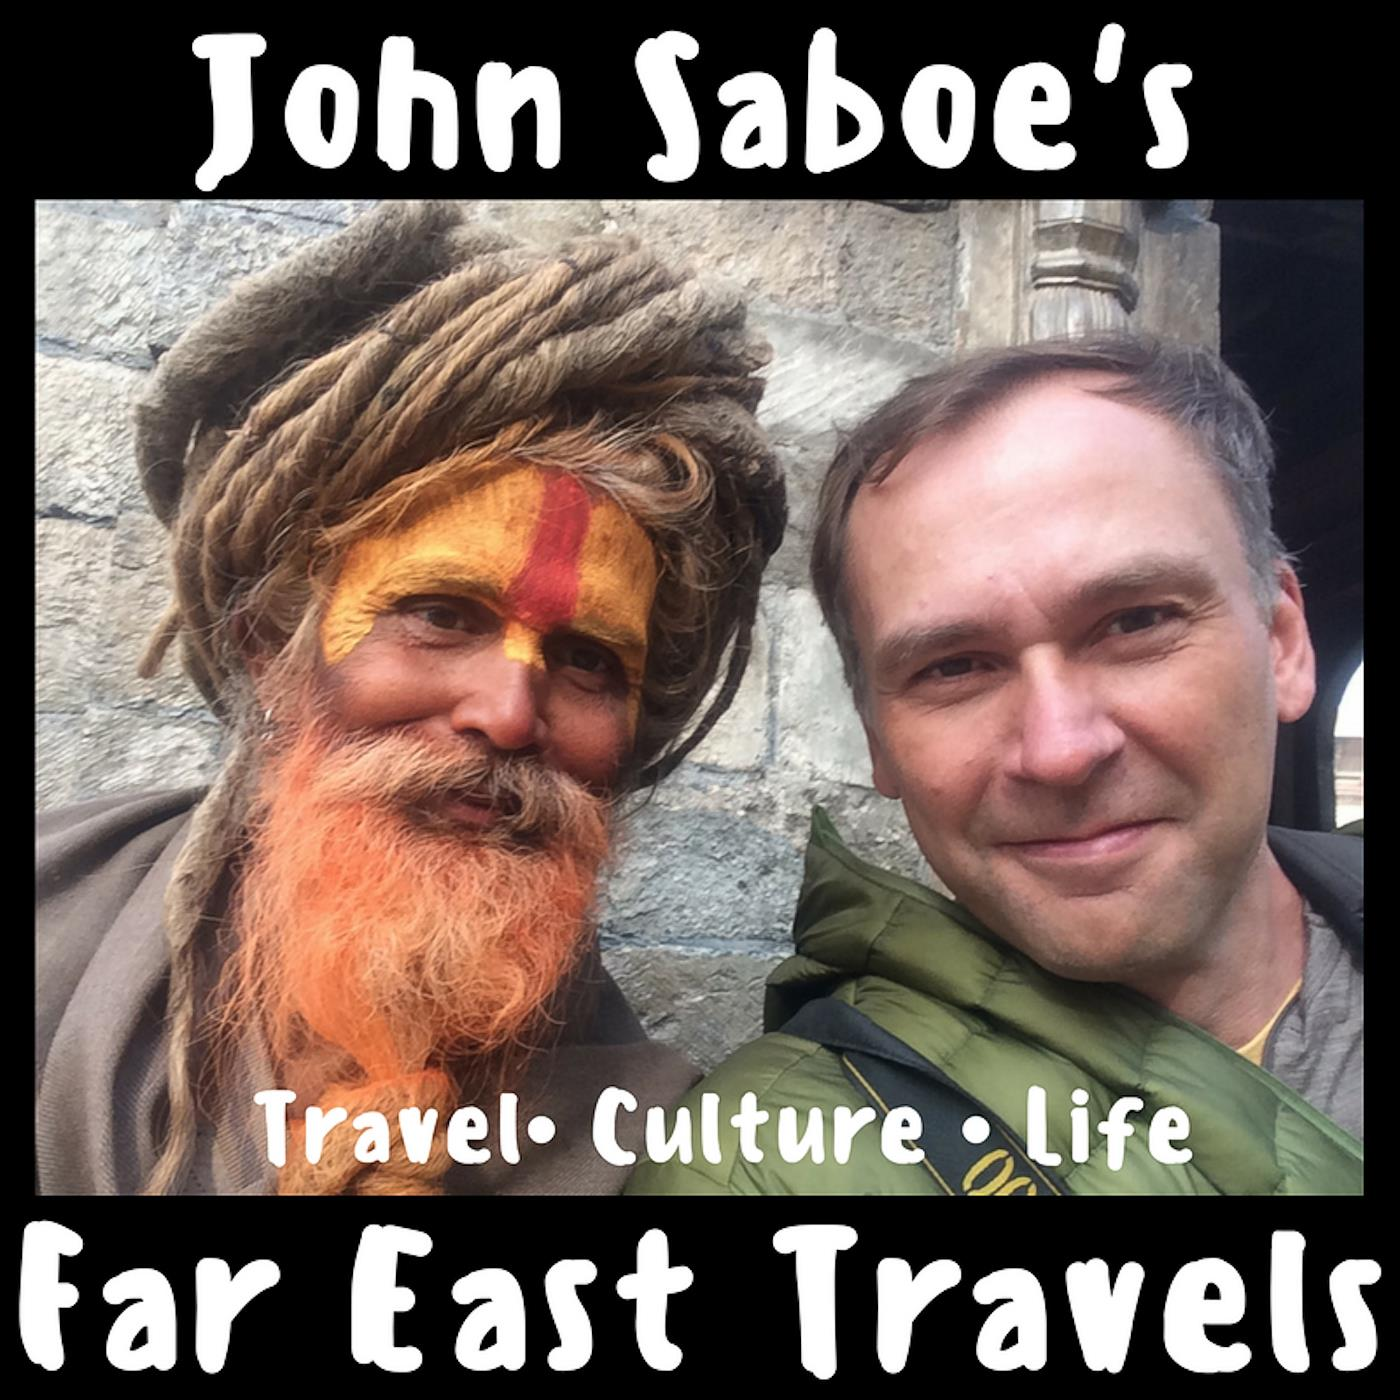 Adventure Travel, Far East:Inspired by Rick Steves, Lonely Planet, National Geographic